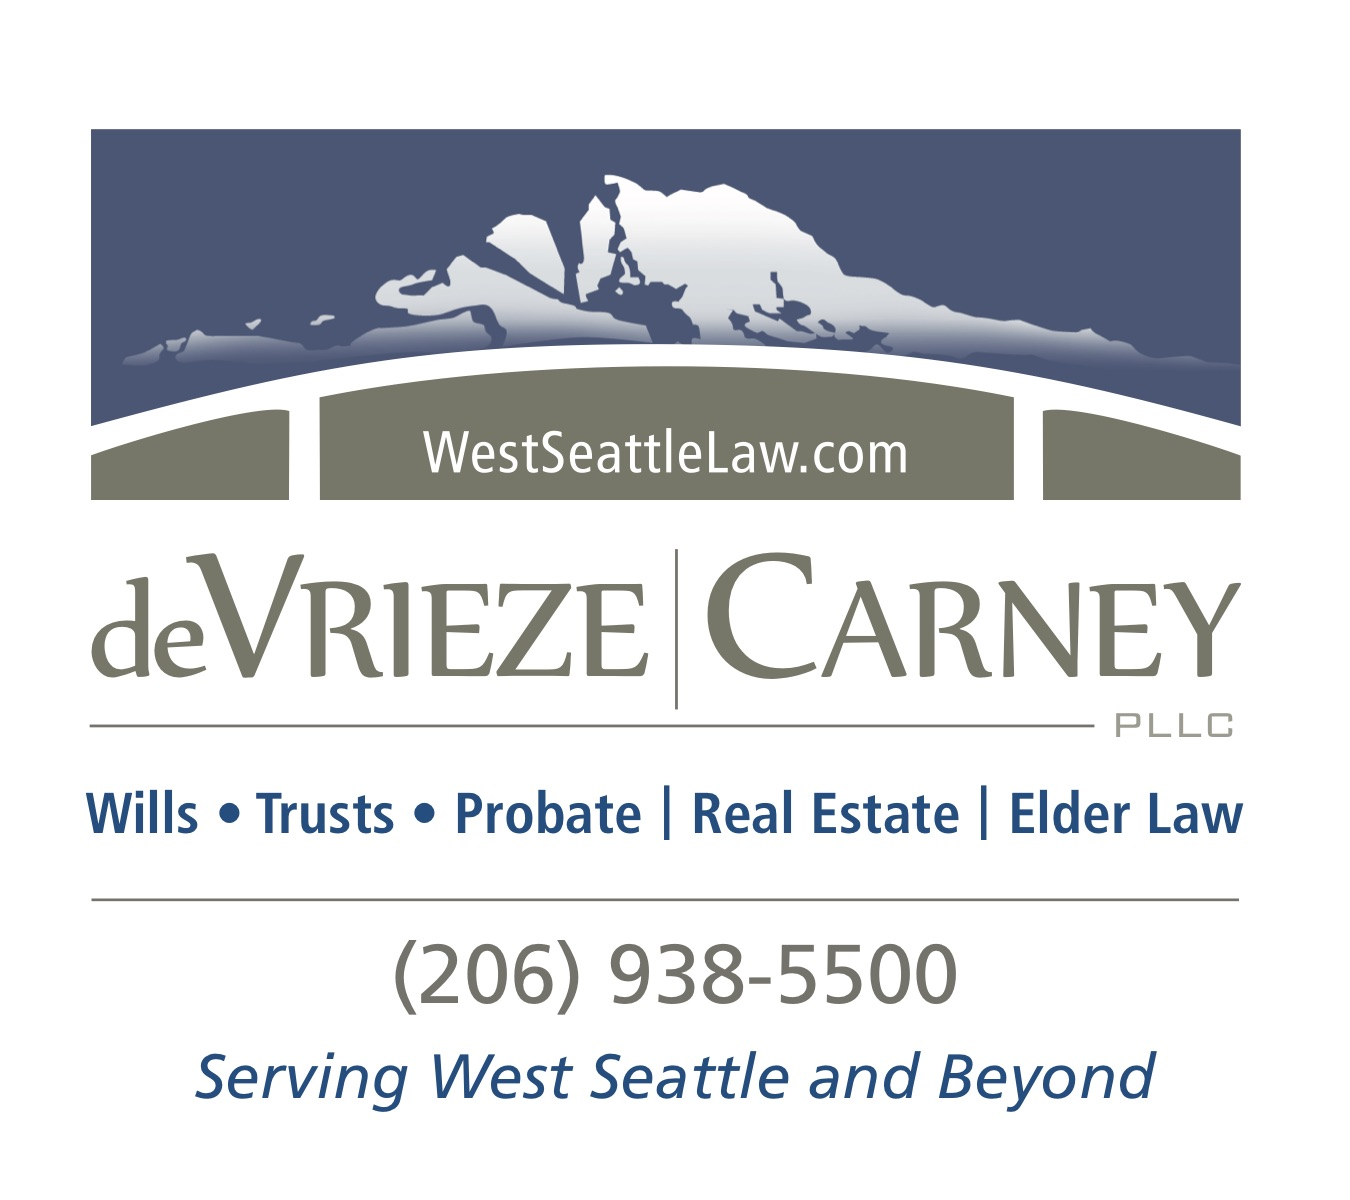 Copy of deVrieze|Carney PLLC